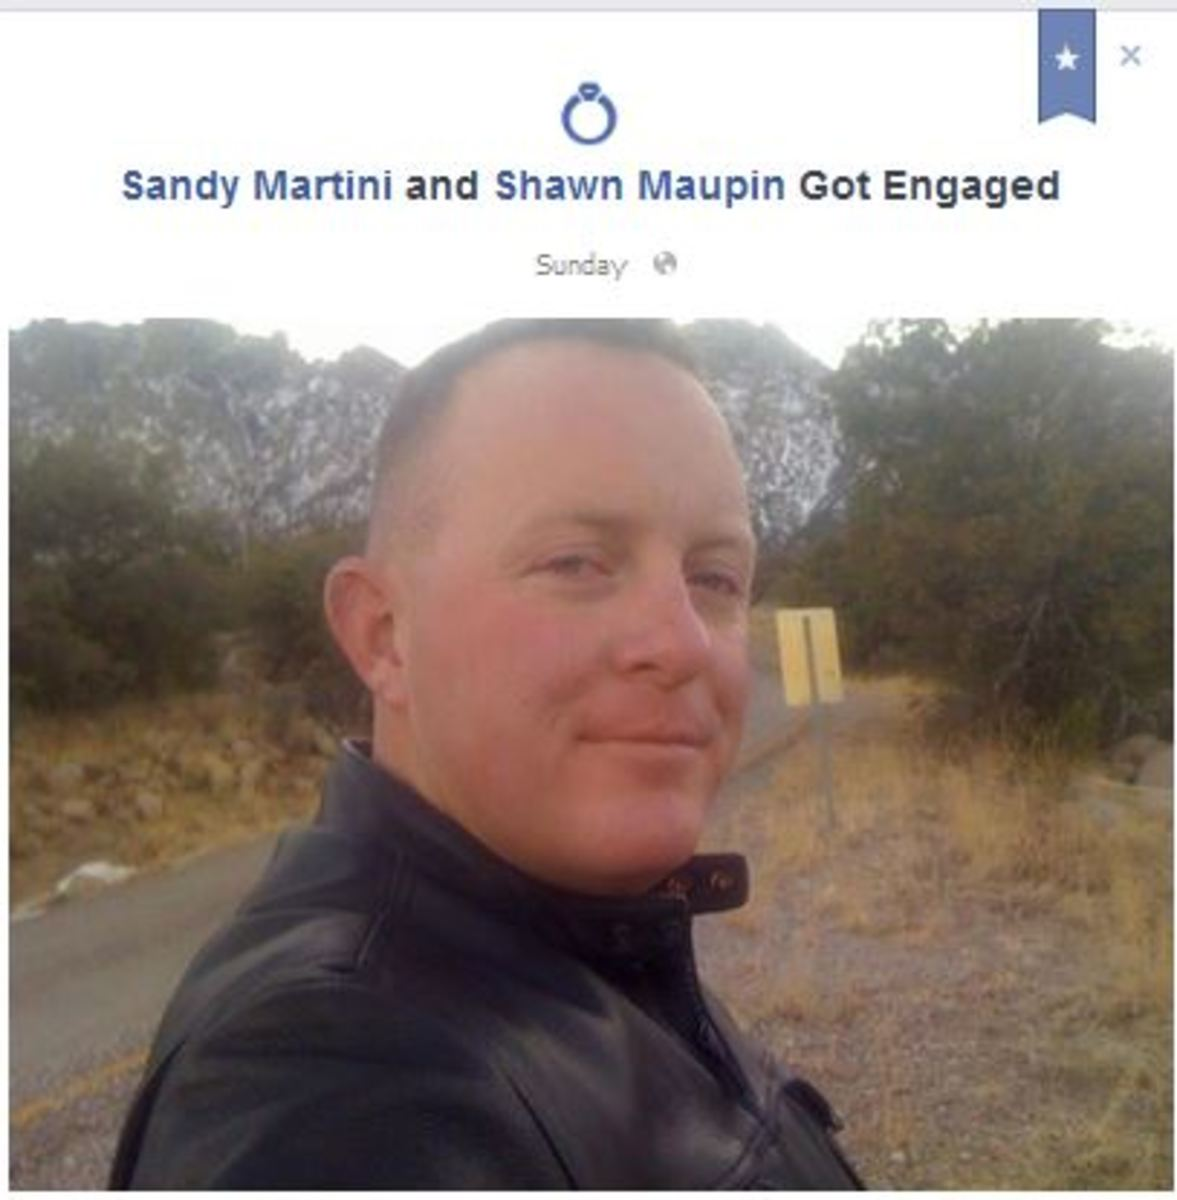 Real Facebook Engagement... fake Mr. Maupin